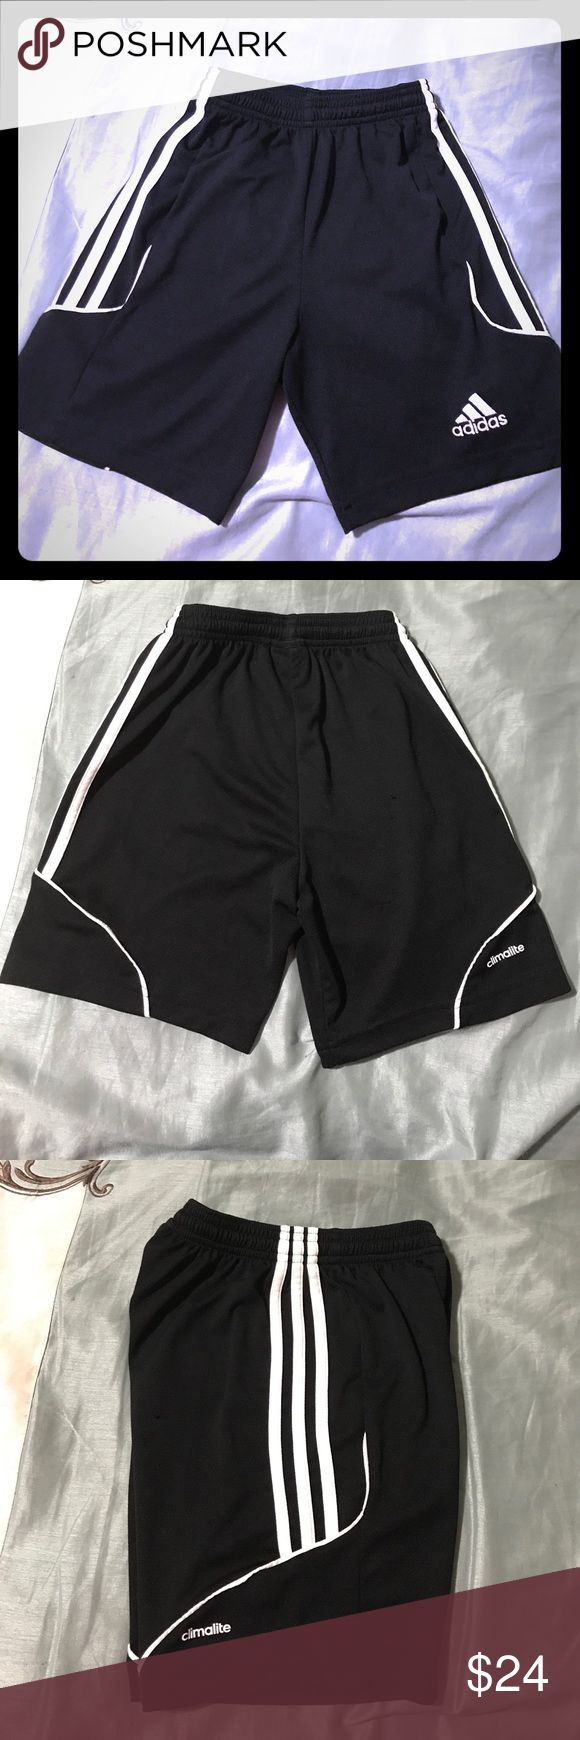 Adidas Soccer Shorts ⚽️ w/bonus shorts Black and white Adidas soccer shorts with climate technology. Have been used by both my daughter and son and still have plenty of use to them. Have included bonus soccer shorts in a size small. Both shorts display slight thread pulling as shown in pictures. adidas Bottoms Shorts